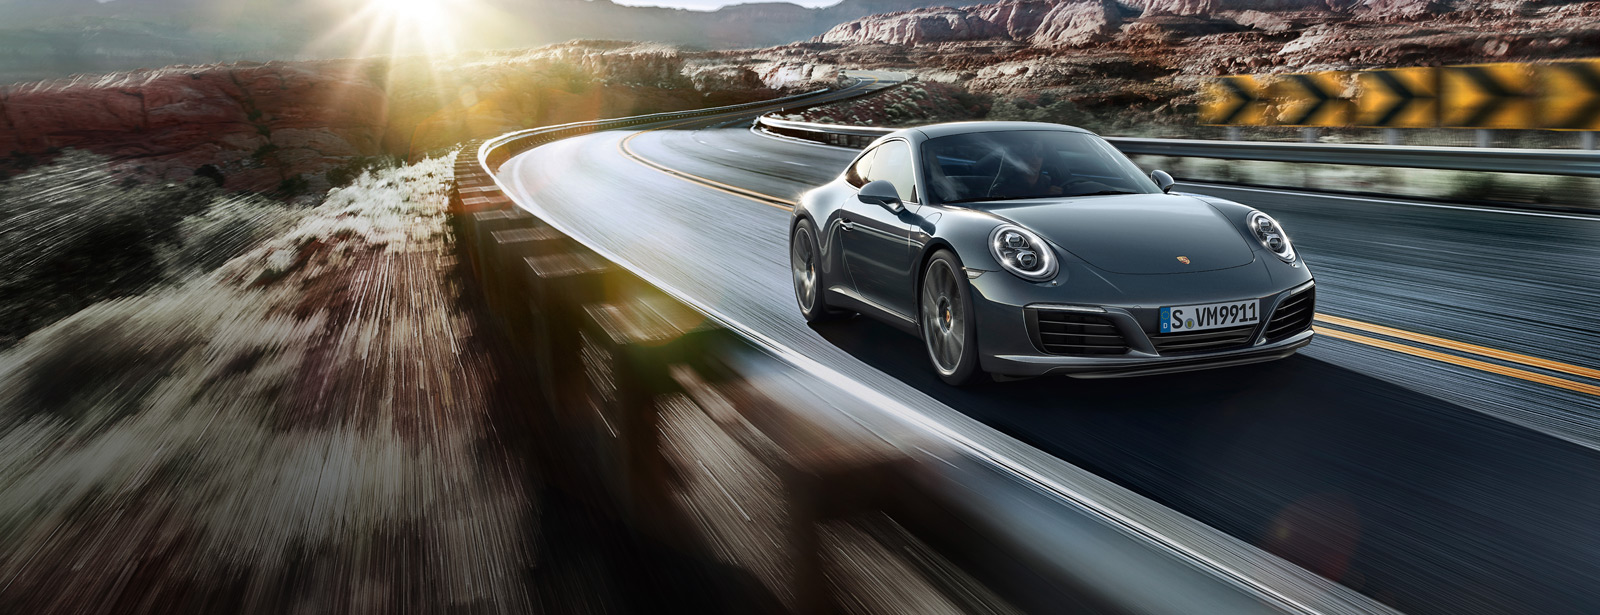 Porsche The new 911 Carrera